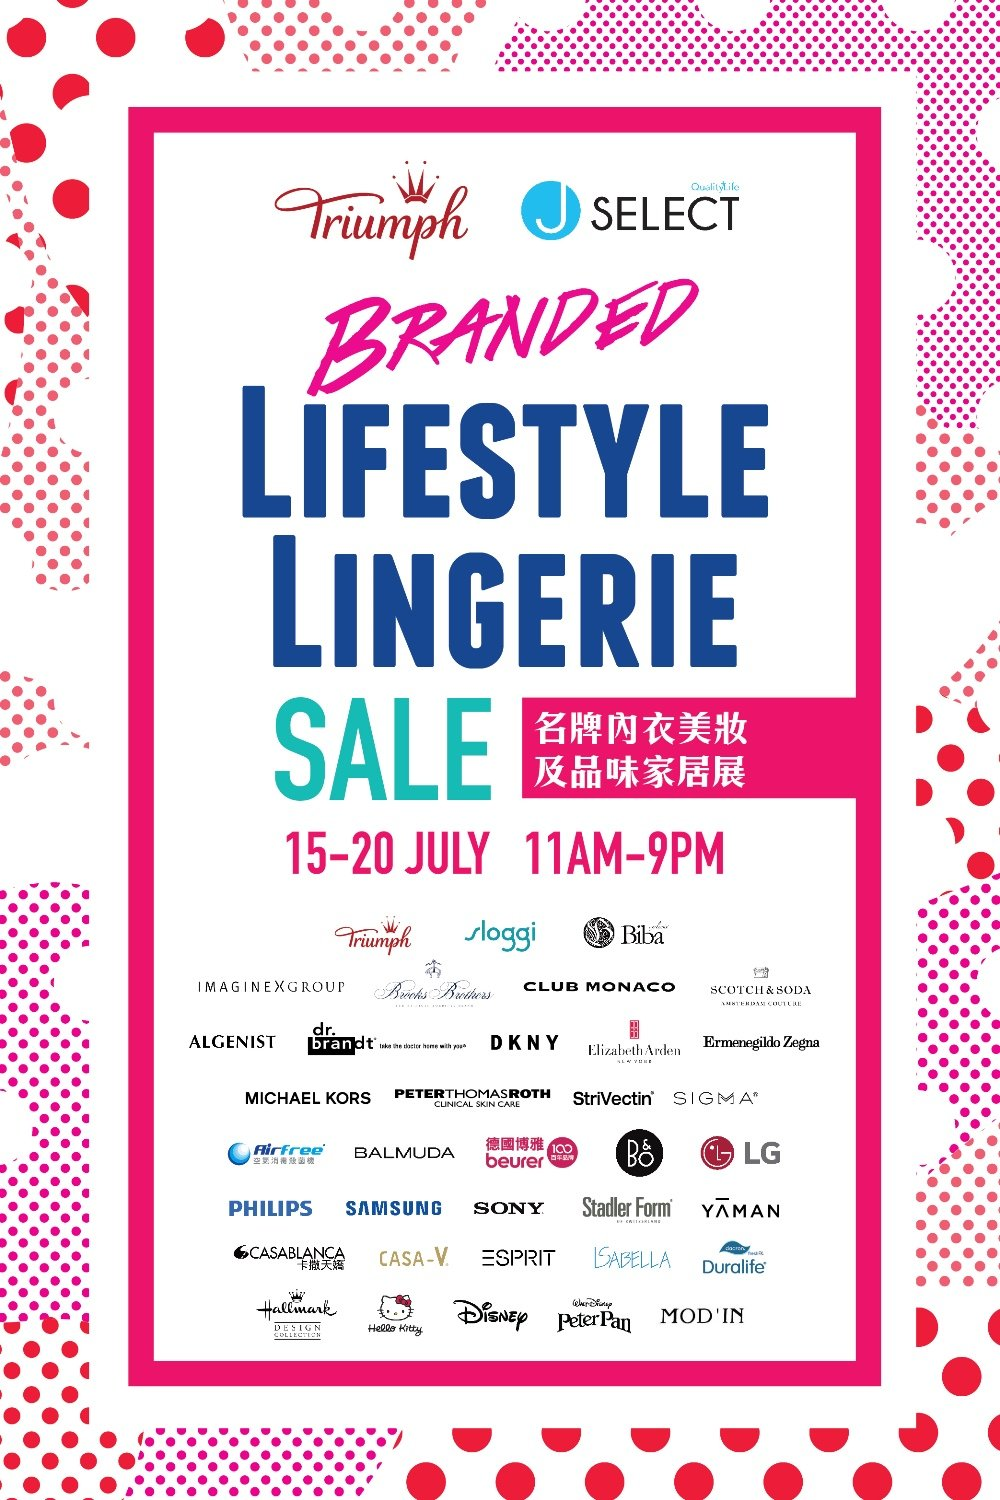 Branded Lifestyle & Lingerie Sale